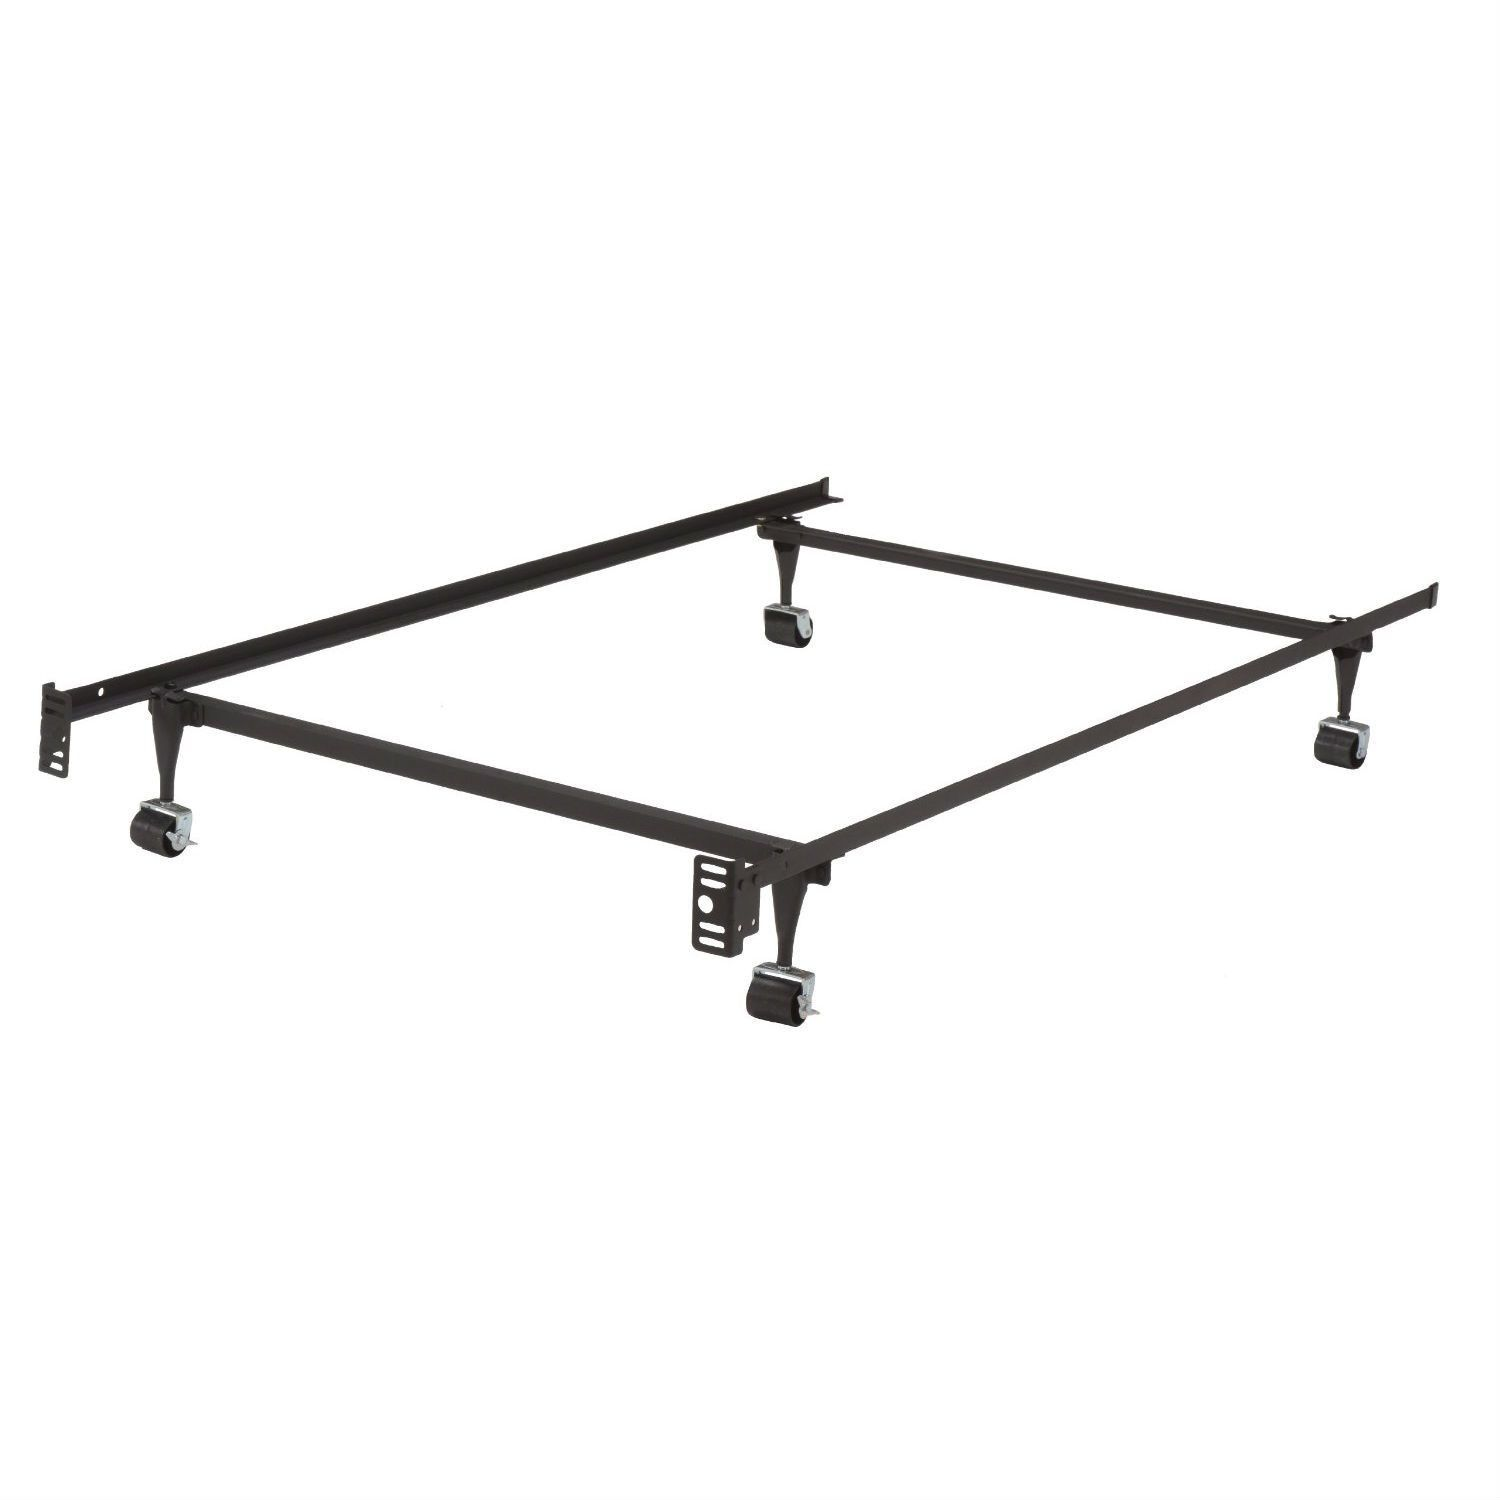 Twin Metal Bed Frame with Locking Rug Roller Wheels & Headboard Brackets